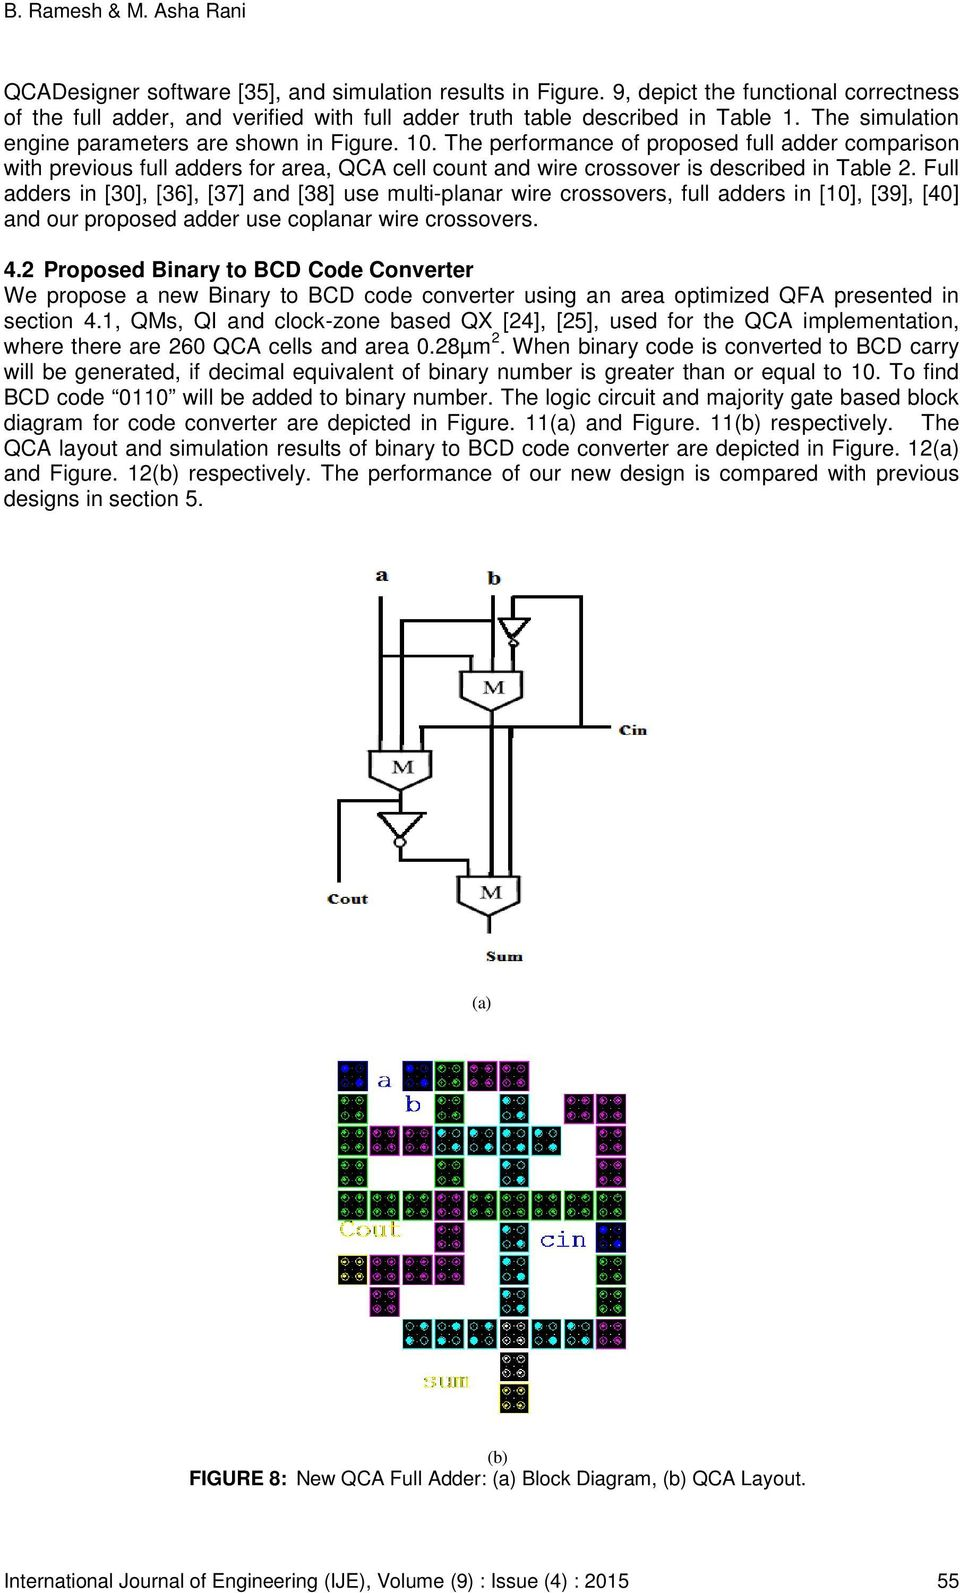 Design Of Binary To Bcd Code Converter Using Area Optimized Quantum Integrated Circuit 1bit Full Adder Cell In Ic Not Working As The Performance Proposed Comparison With Previous Adders For Qca